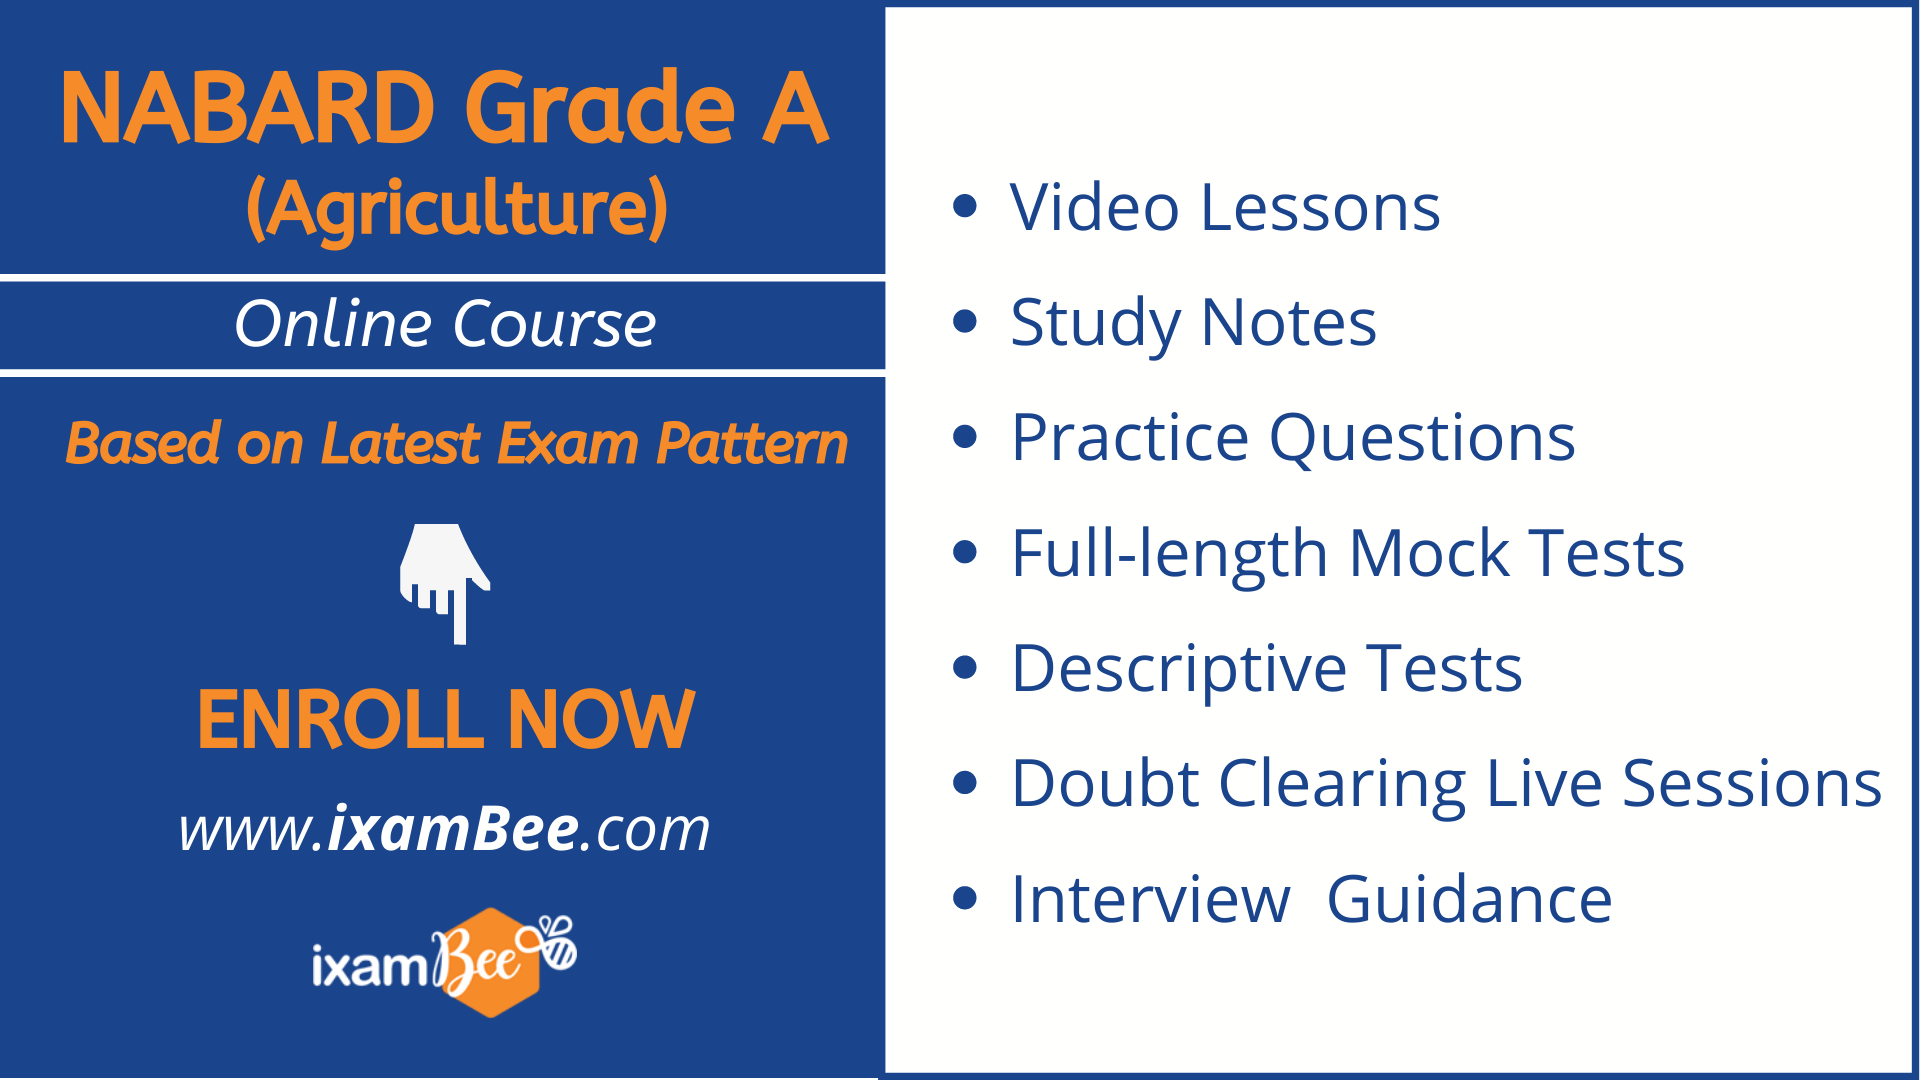 NABARD Grade A Agriculture Online Course